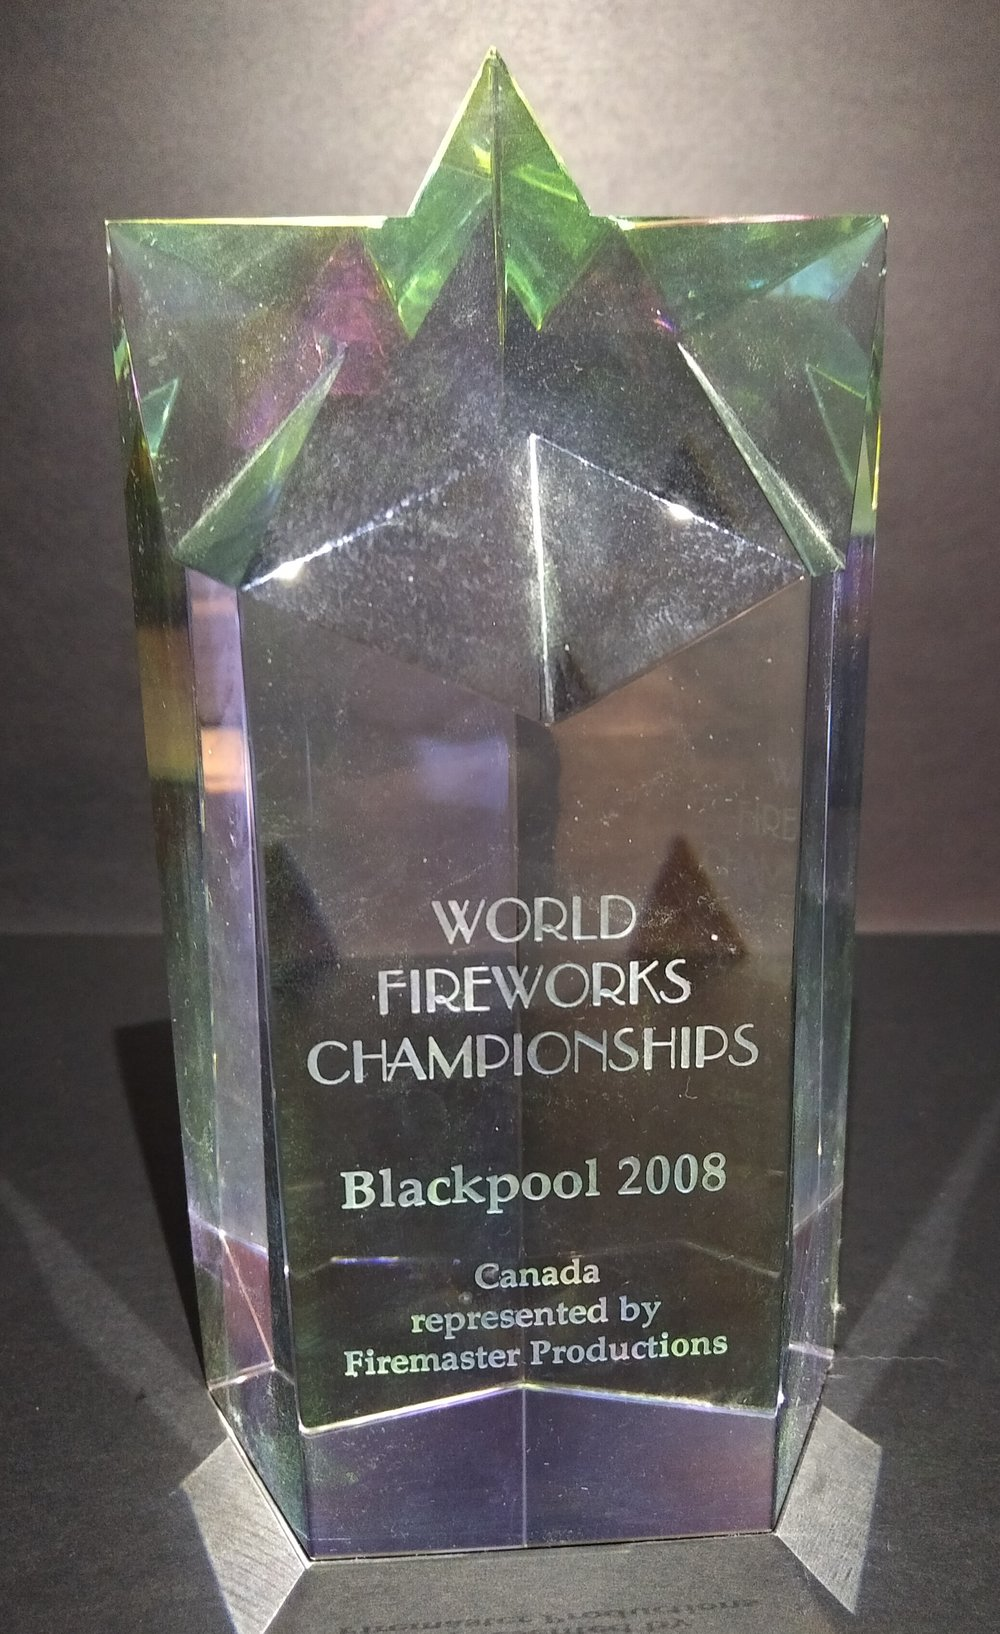 2008 Blackpool World Fireworks Championships -